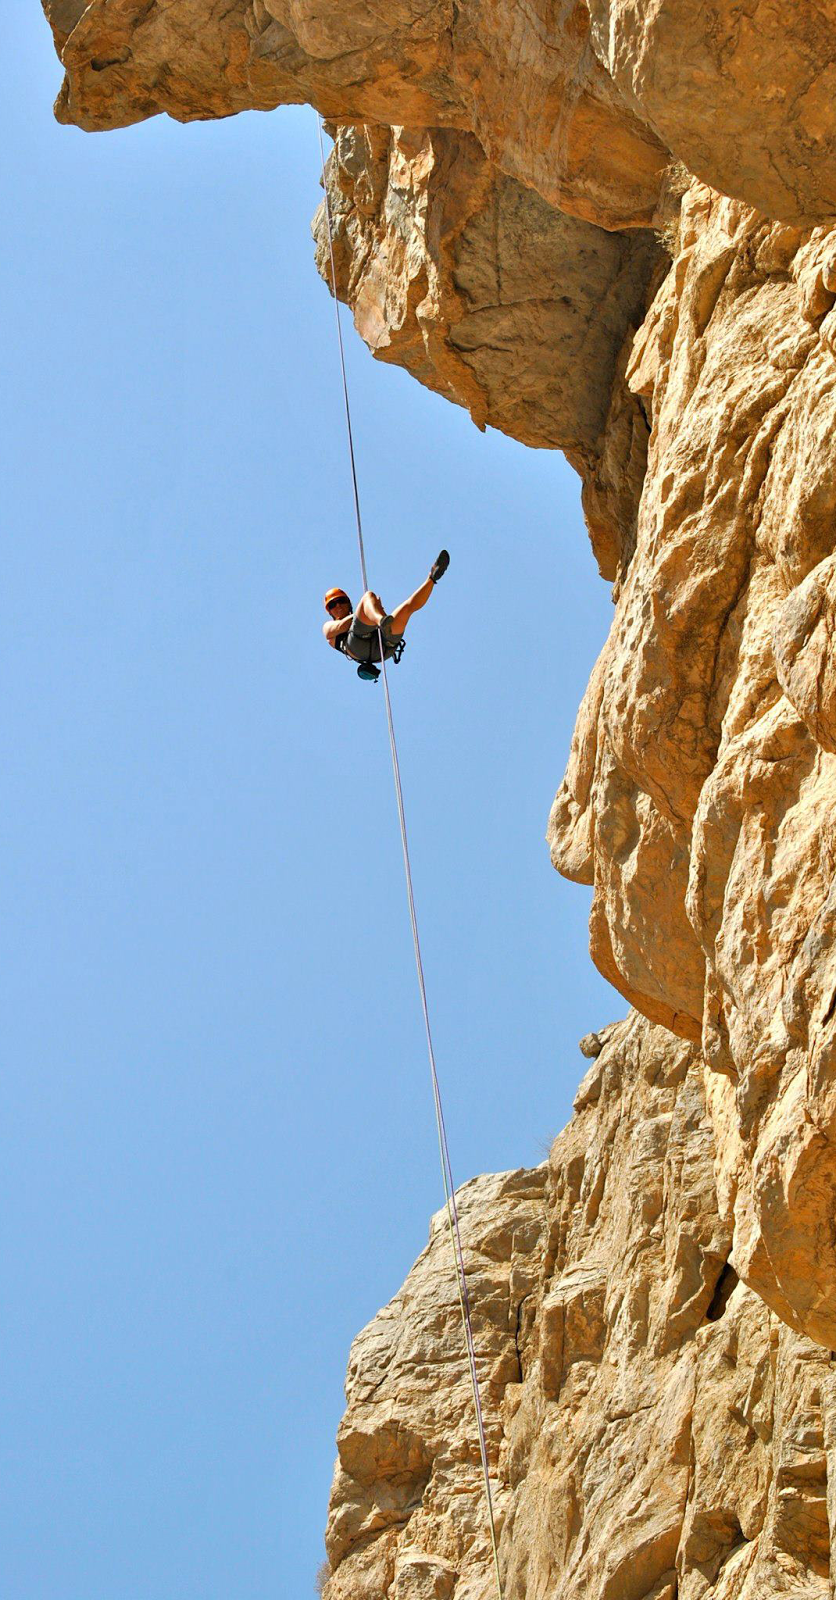 Wayfinder Ali on rappel